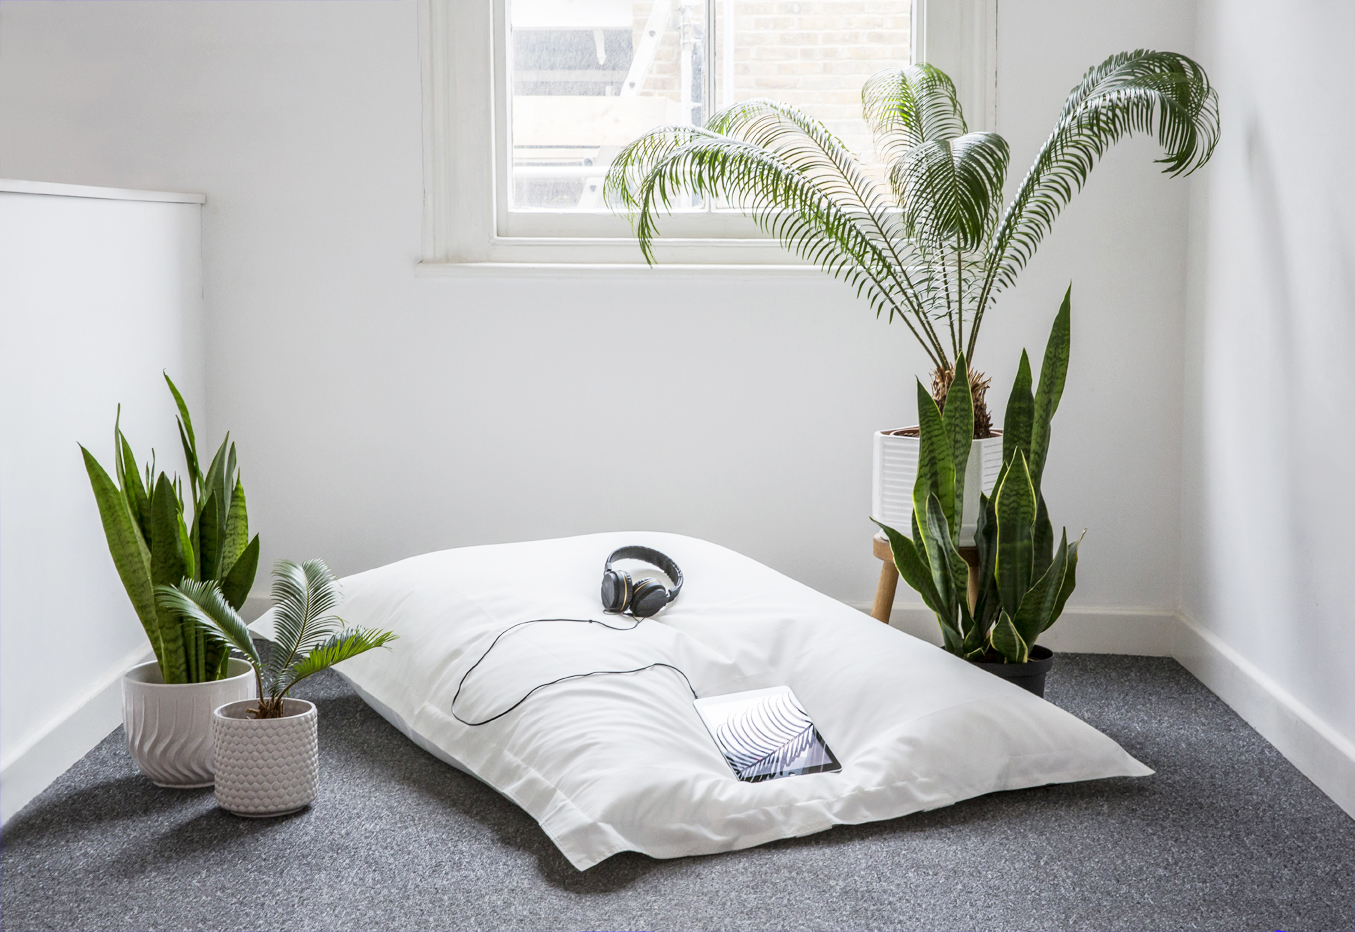 "Installation view,  Hard/drive...   www.iamharddrive.com  Lounging island comprising bean pillow, plants (Cycas revoluta and Sansevieria trifasciata)*, and iPad showing  Hard/drive 's website.  This installation of  Hard/drive  was at MinEx on Pentonville Road, London, in 2018, which at the time had a level of pollution seven times the maximum EU limit. Yet, at home or in the office, just six air purifying plants are required per person to meet their daily needs for fresh, clean, highly oxygenated air. Damian Carrington, Environment editor at The Guardian, reported, ' Air pollution  in London has reached the legal limit for the whole of 2018 less than a month into the year.' And, according to the U.S. Environmental Protection Agency, air inside the average home is up to five times more polluted than the air outside, so unless all furniture, paint, carpeting and flooring are organic, eco-friendly and pure, it's most likely there is moderate to substantial off-gassing (caused when synthetic materials or chemicals naturally degrade - releasing harmful particles into the air).  *Plants cultivated at  A V A L A N C H E  - an artist-run lounge and botanical garden in Peckham - growing, planting and propagating since 2015  ♡  Sansevieria are highly rated by NASA Clean Air Study** as air-purifiers, removing pollutants.and, unlike most plants, releasing oxygen at night. The two additional plants in this installation are Cycas revoluta.  Revoluta  means ""curled back"", which is in reference to its leaves. Cycas revoluta are one of the most prehistoric living seed plants on the planet. **NASA's research into plants developed following their need for an efficient, long lasting source of clean air to keep astronauts alive and well during extended space missions."